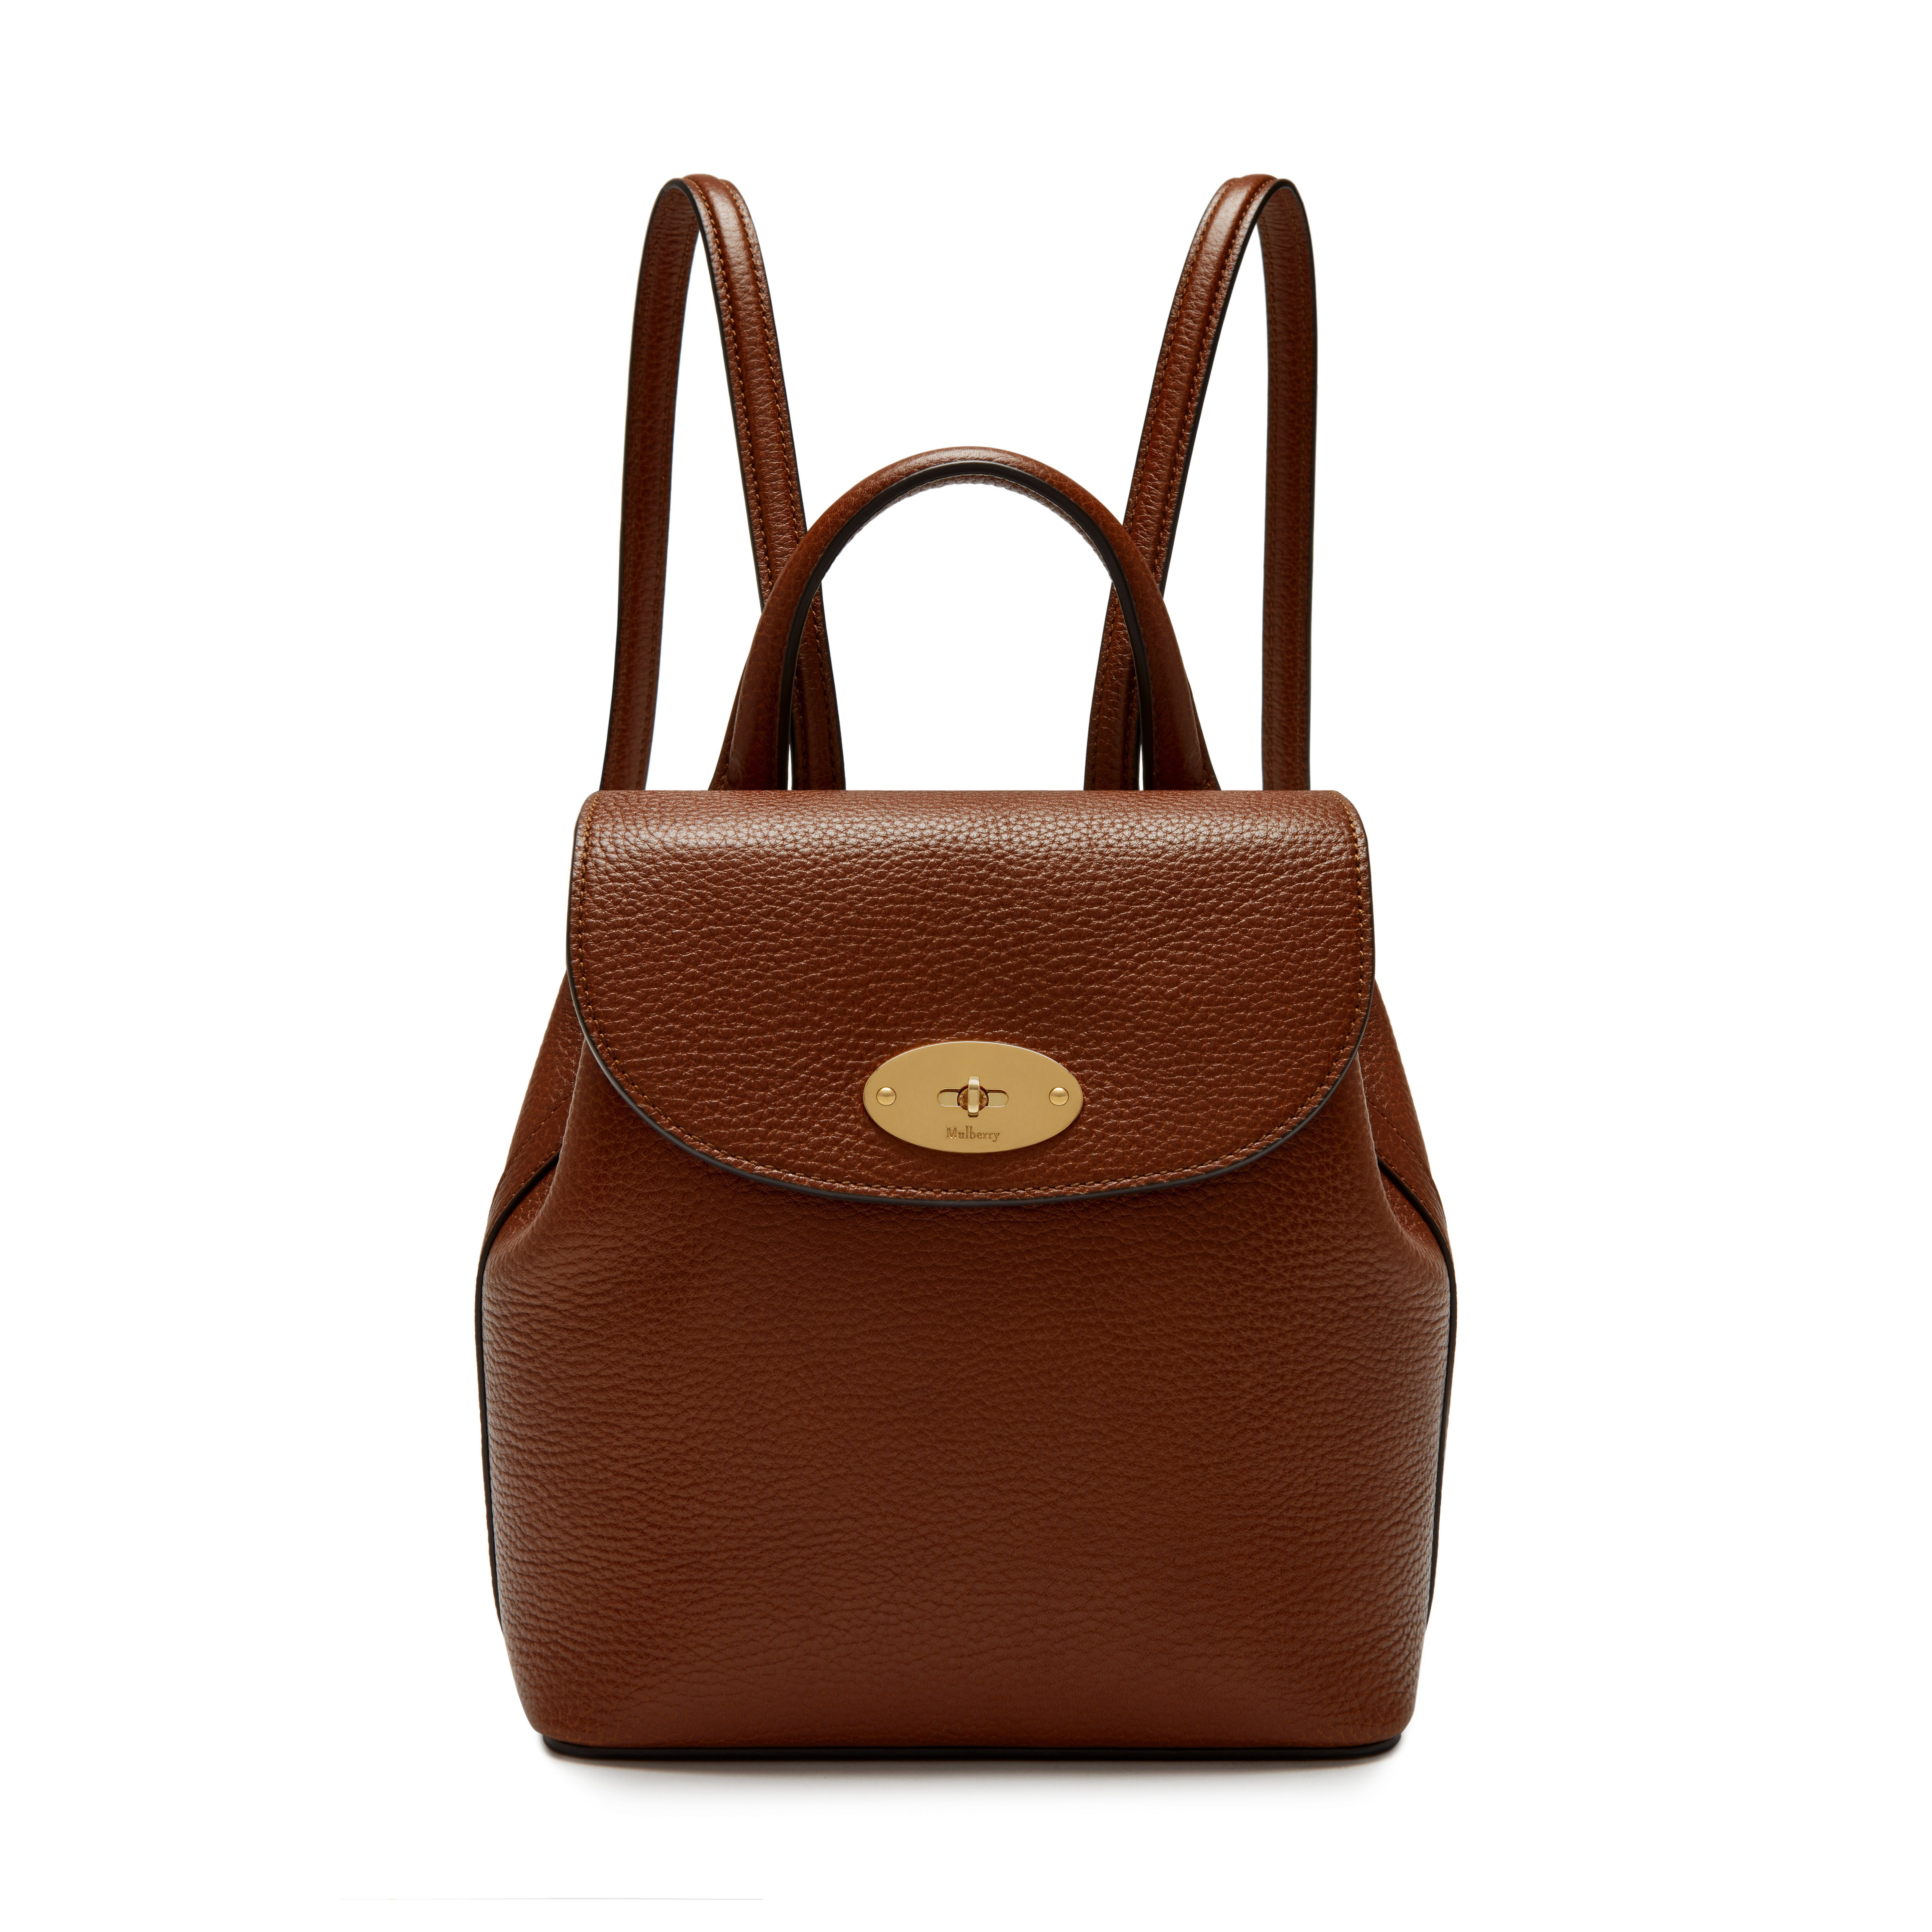 60e86b4e4a Shop the Oak leather Mini Bayswater Backpack on Mulberry.com. Hands-free  and ready to go - on a miniature scale. This new Mini version of the  practical ...